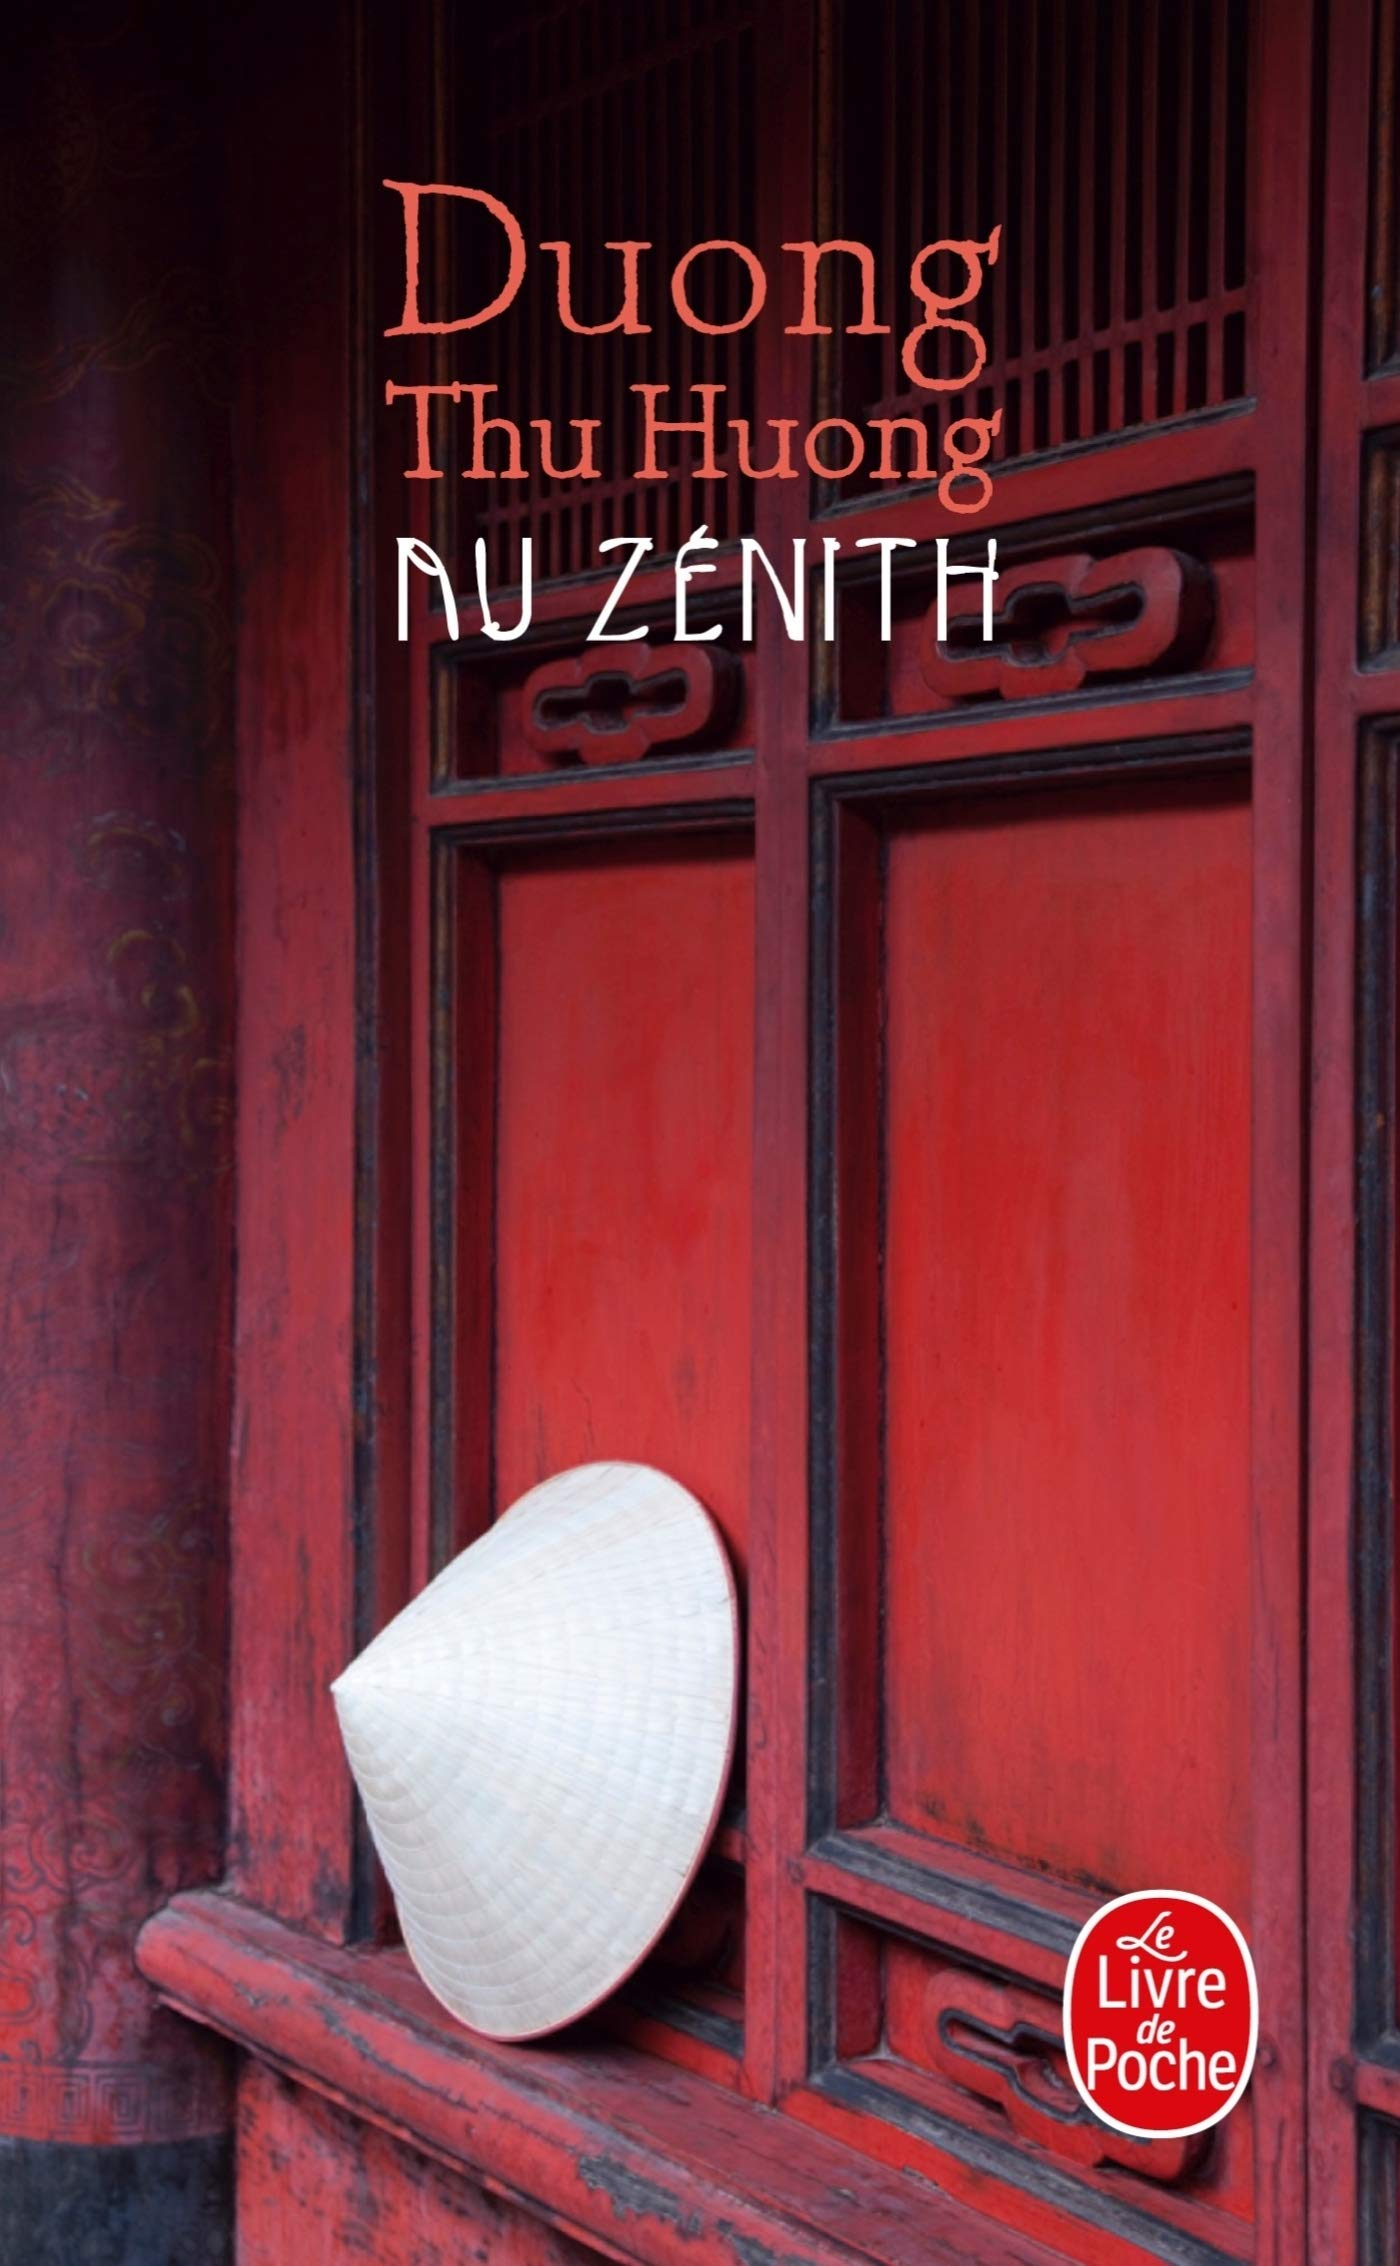 Buy Au Zenith Le Livre De Poche Book Online At Low Prices